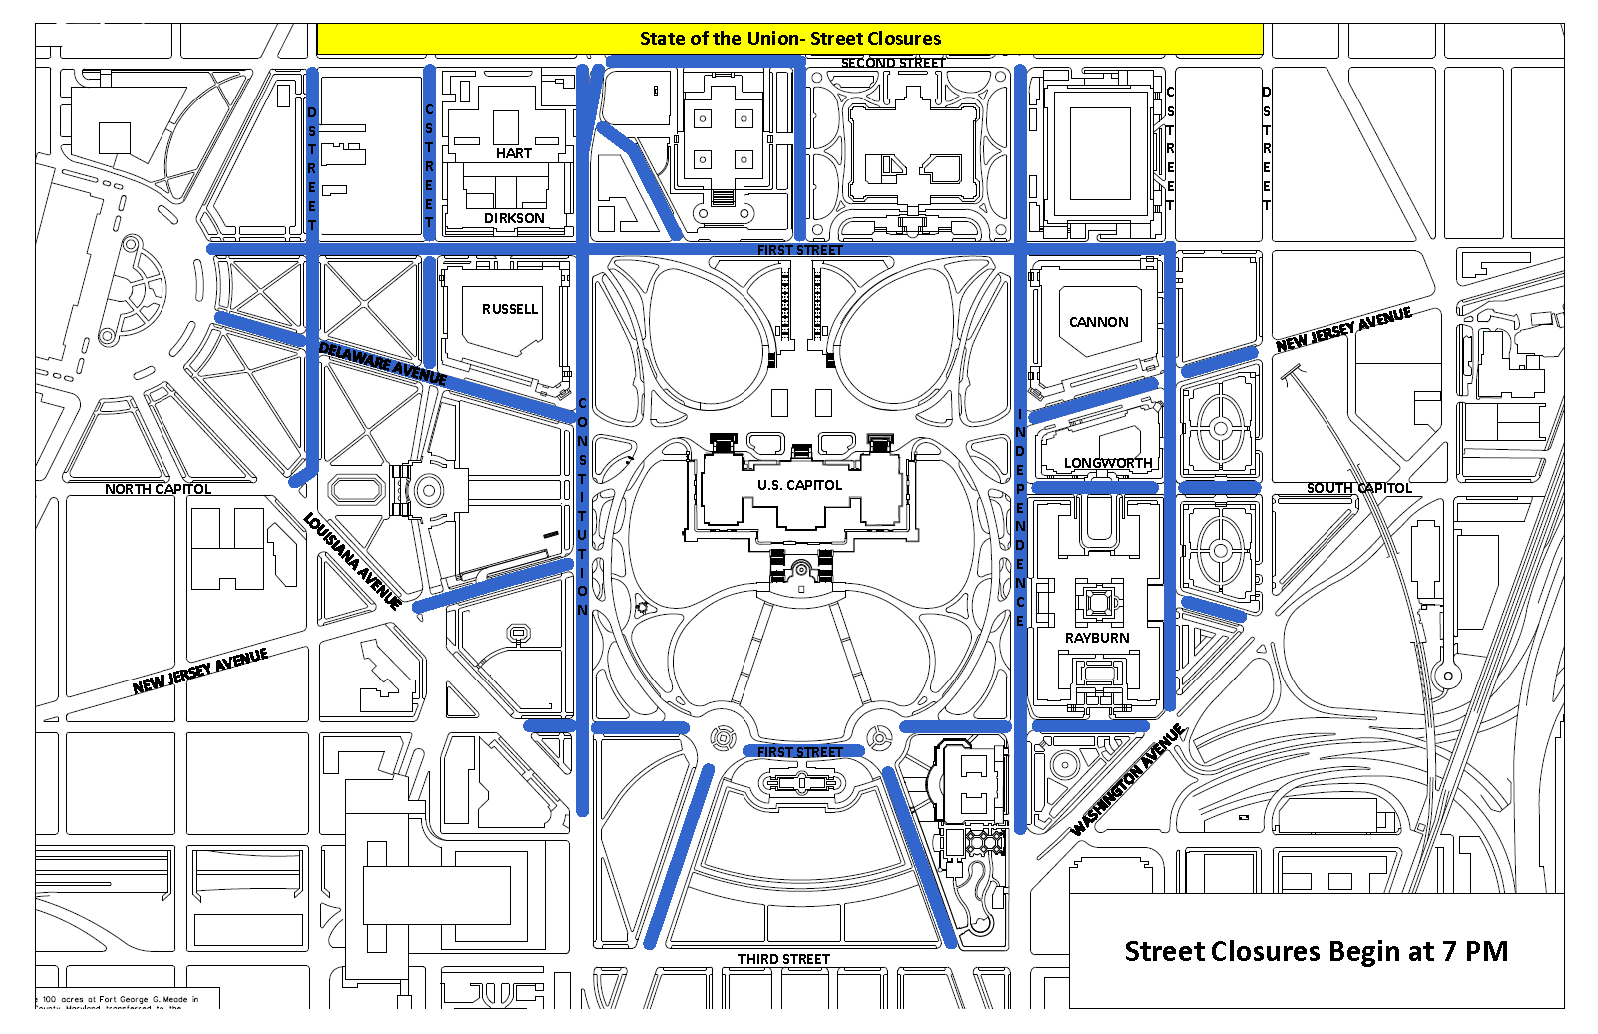 Map of 2019 State of the Union Street Closures on Capitol Hill in Washington, D.C.